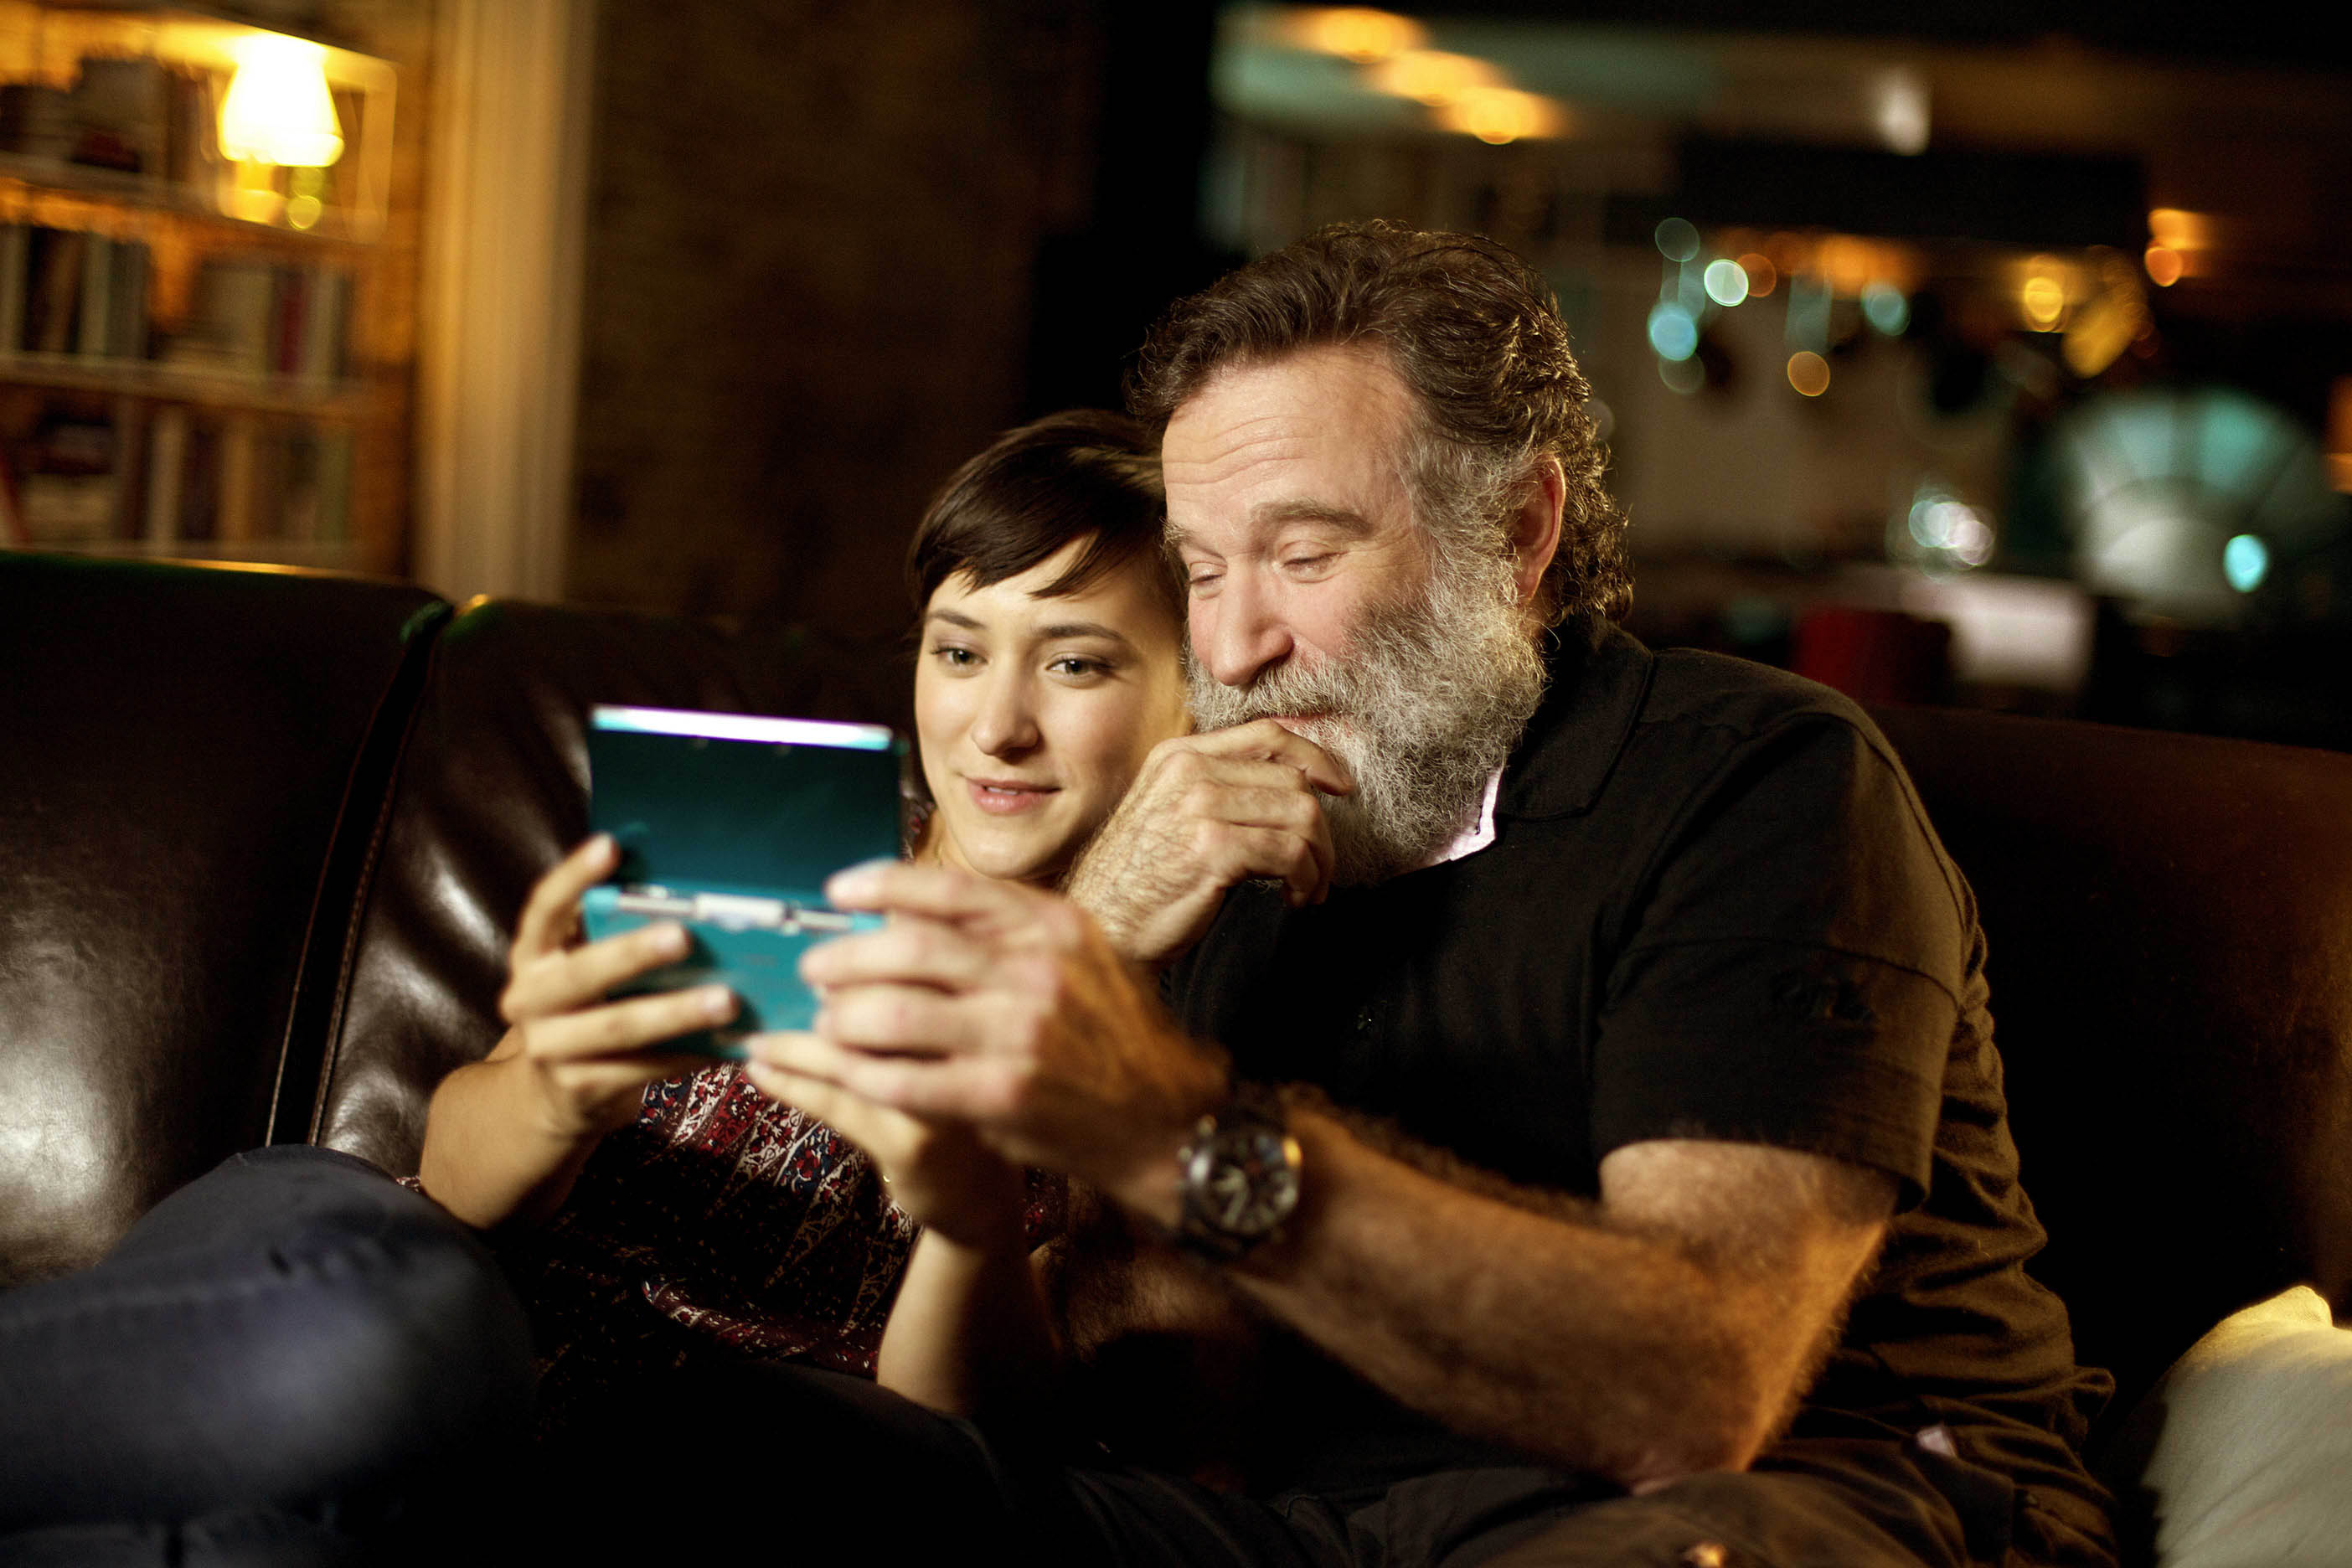 Robin Williams, il popolare attore con la figlia Zelda durante lo spot per The Legend of Zelda: Ocarina of Time 3D